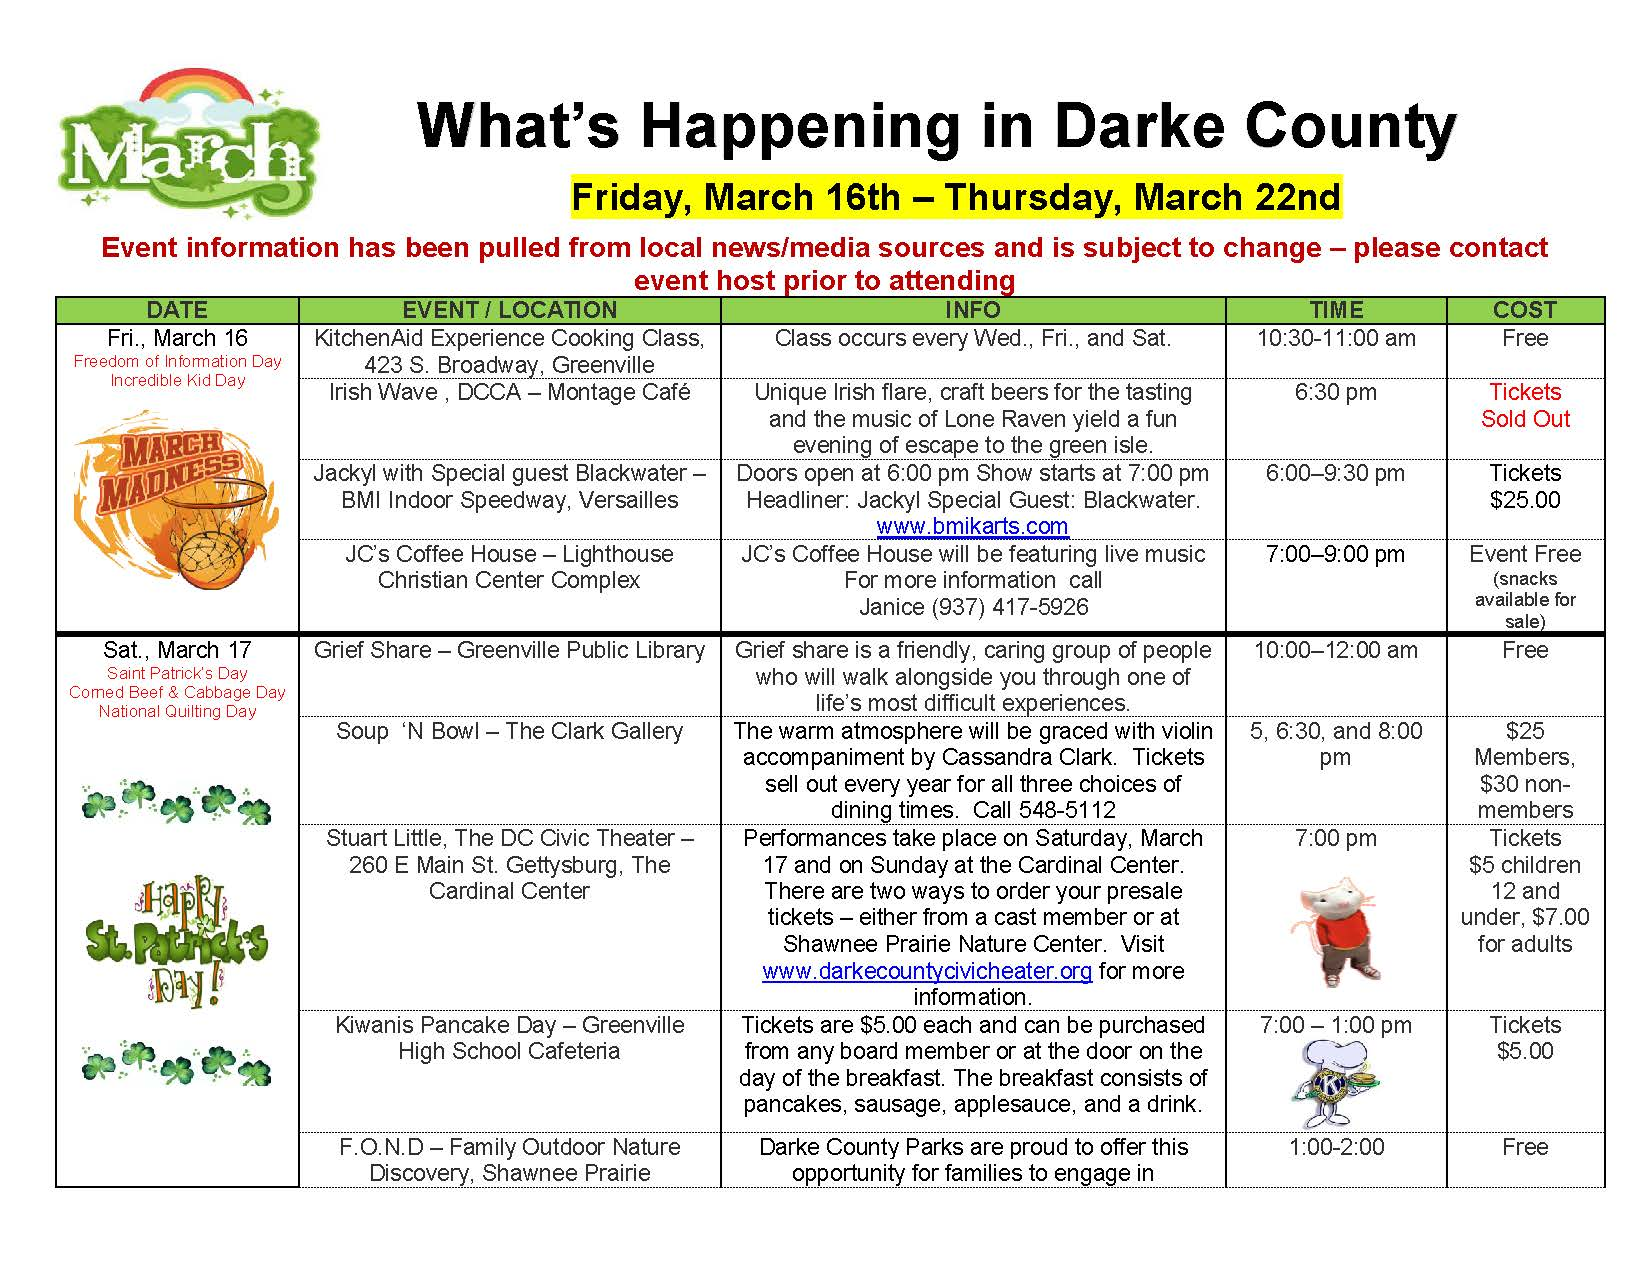 What's Happening in Darke County – 03/16/18 through 03/22/18